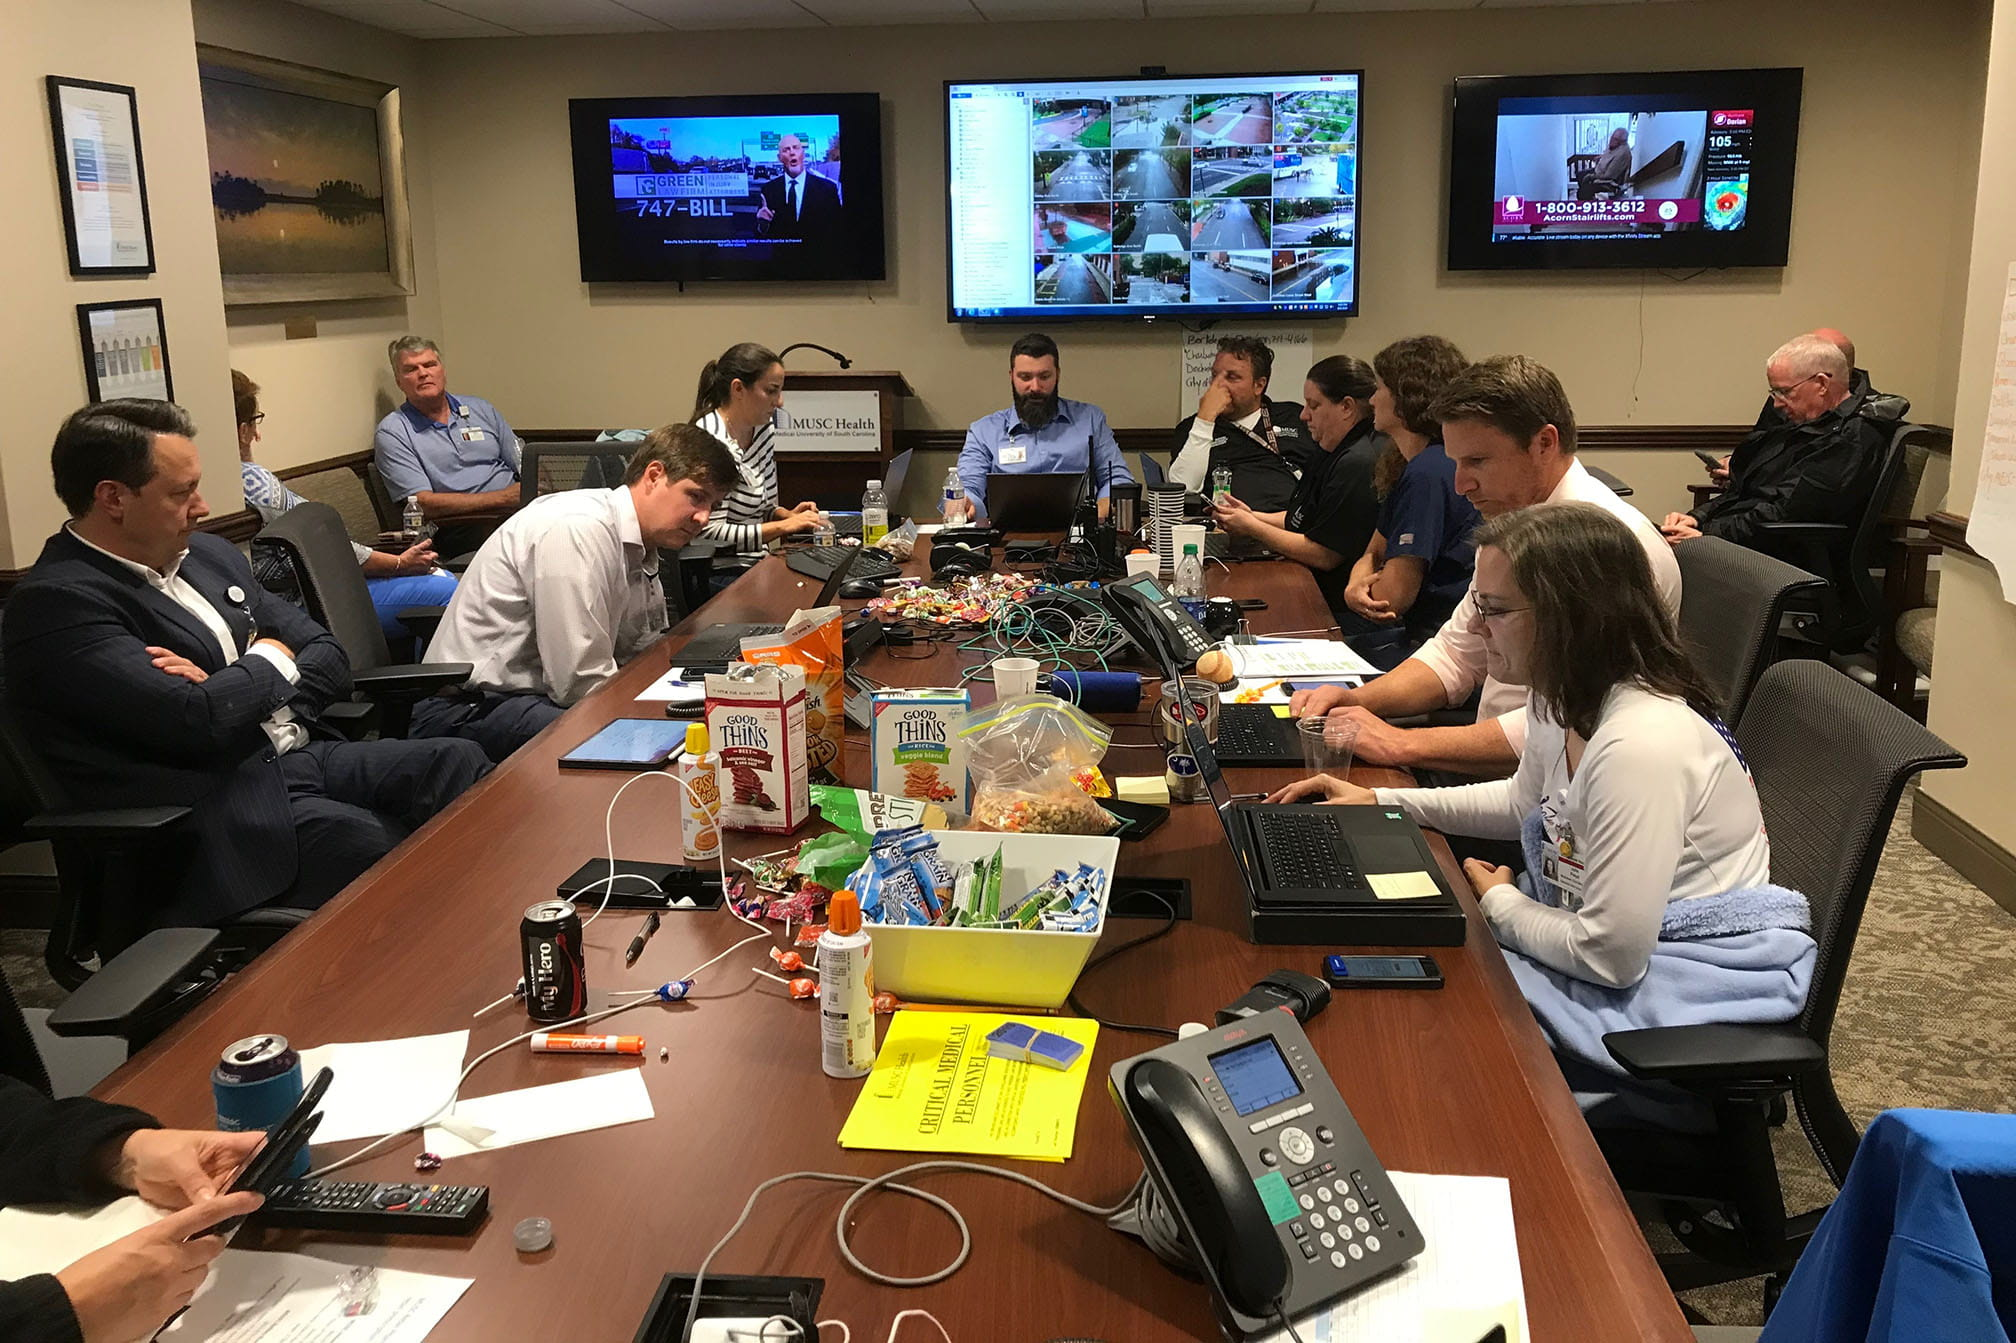 A look inside the command center at MUSC. Monitors on walls show locations across campus as people work on computers around a conference table